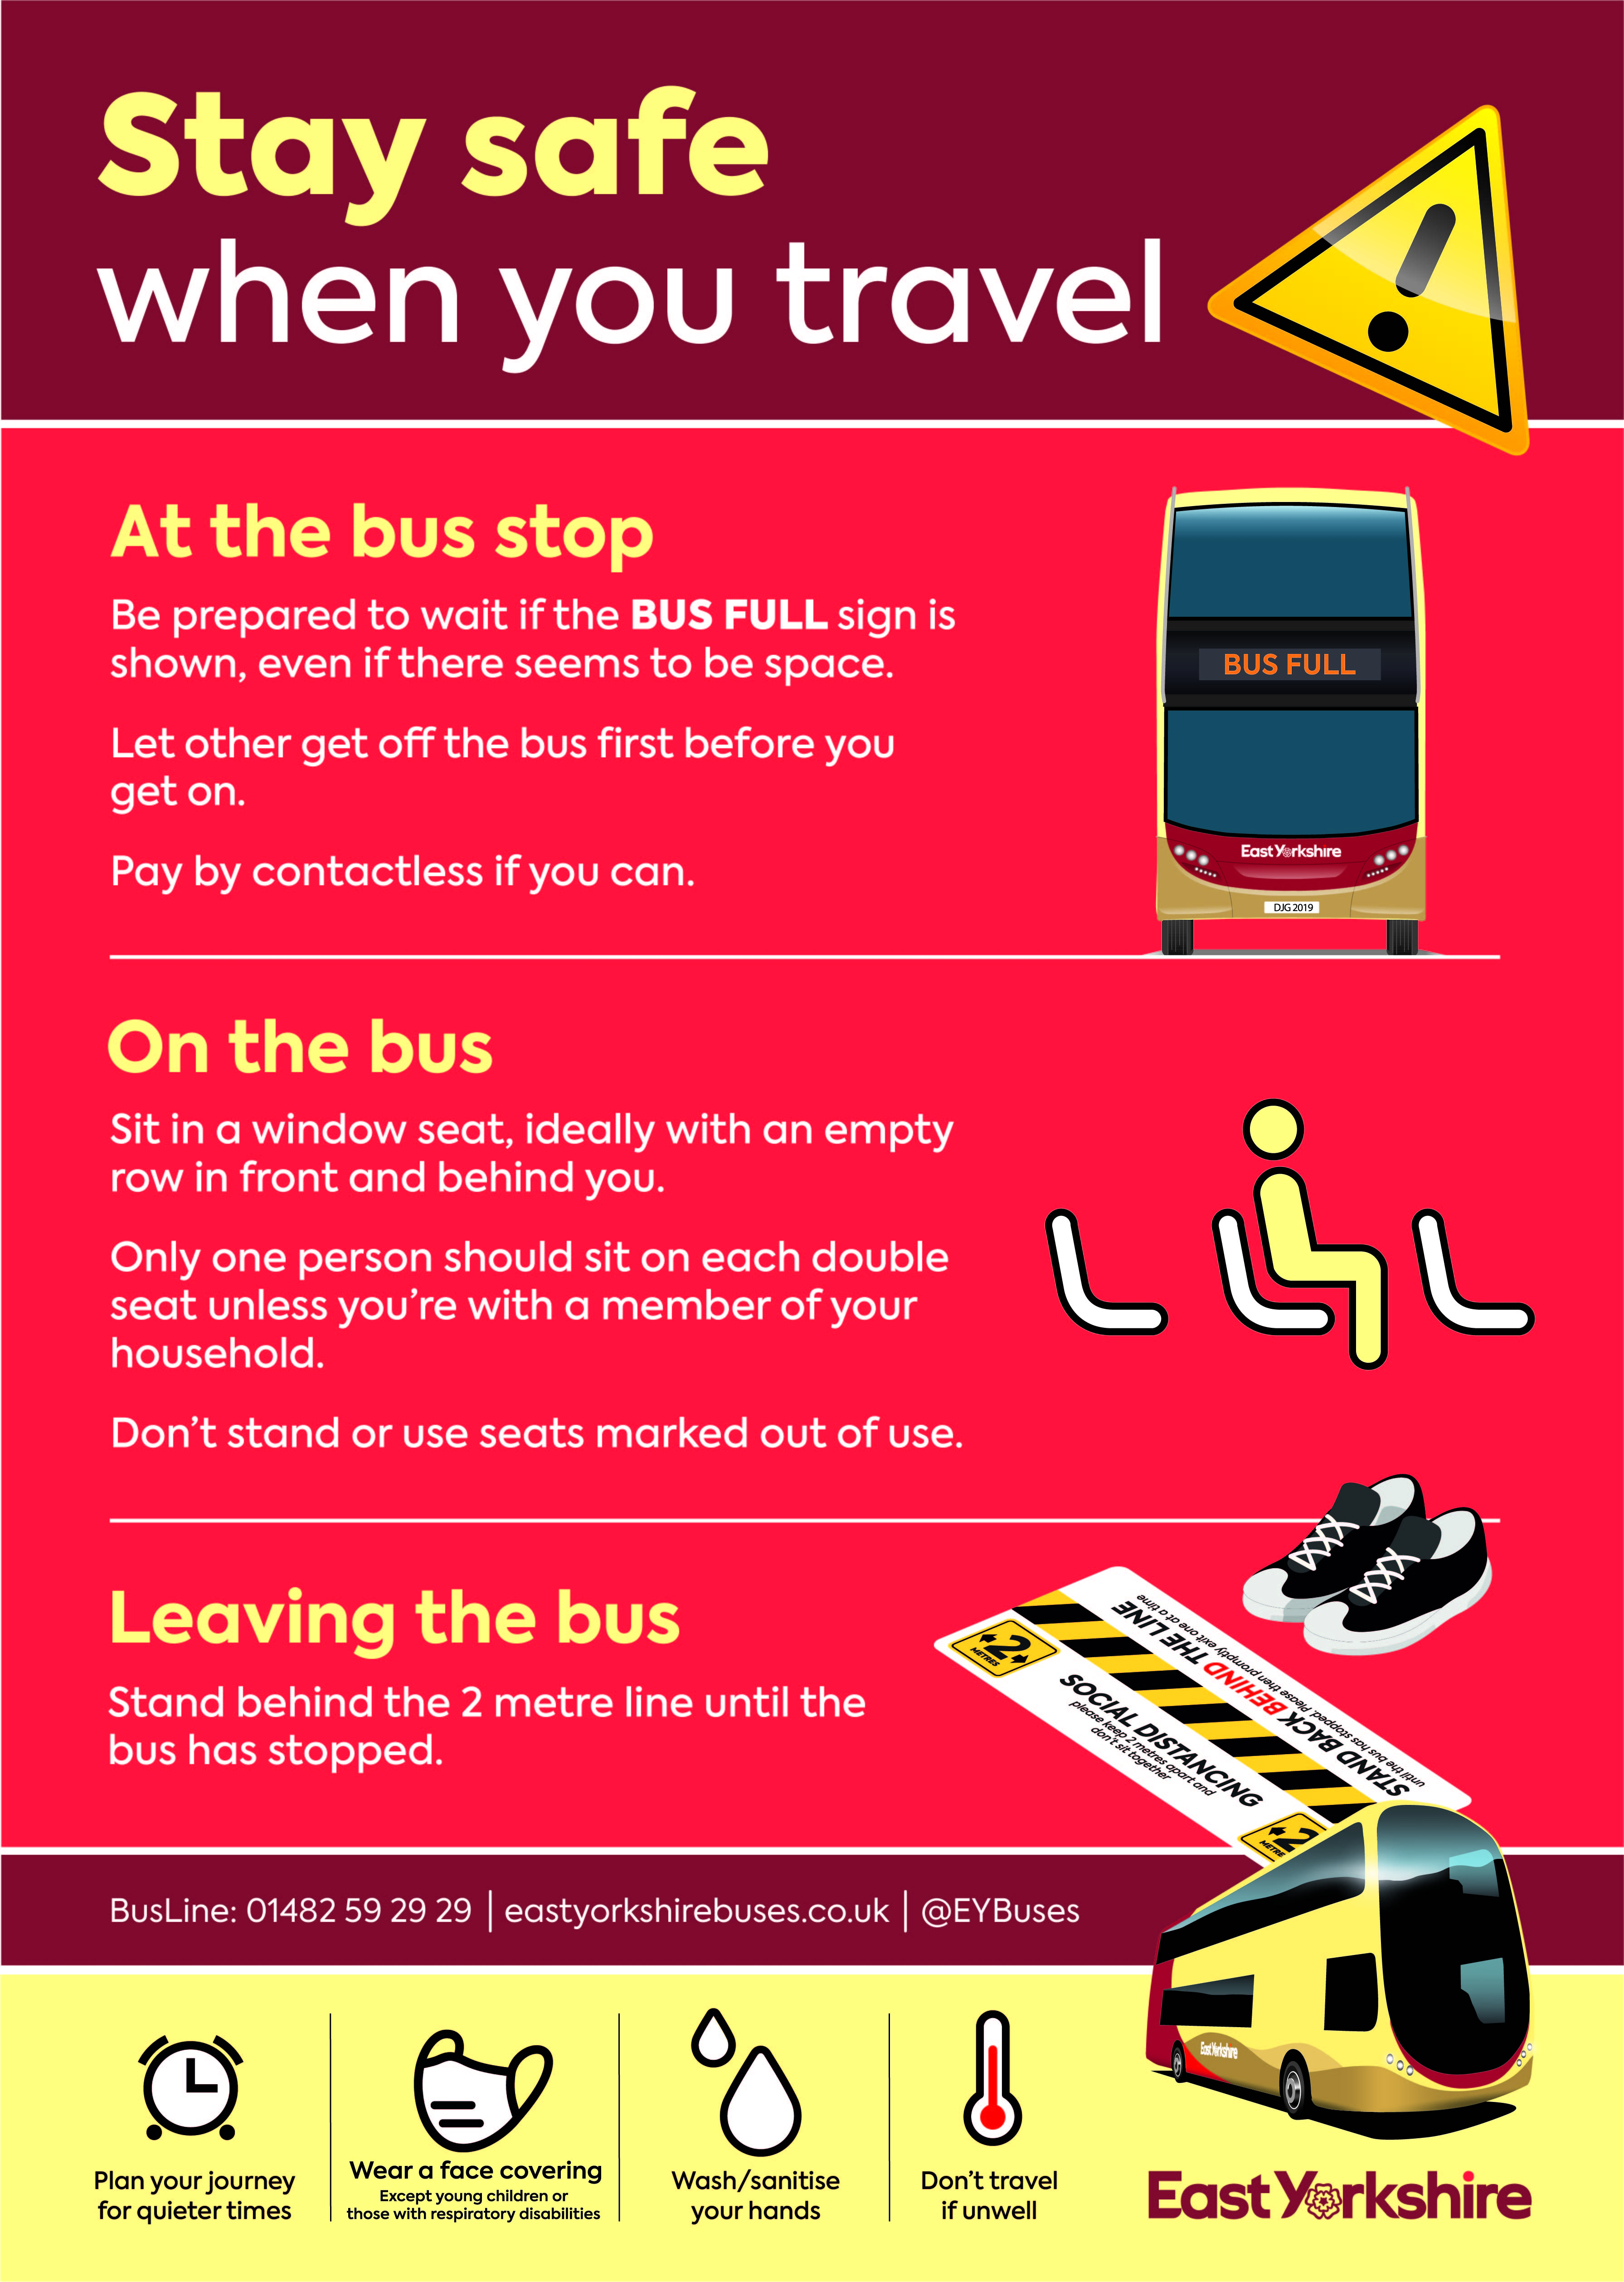 Stay safe on the bus